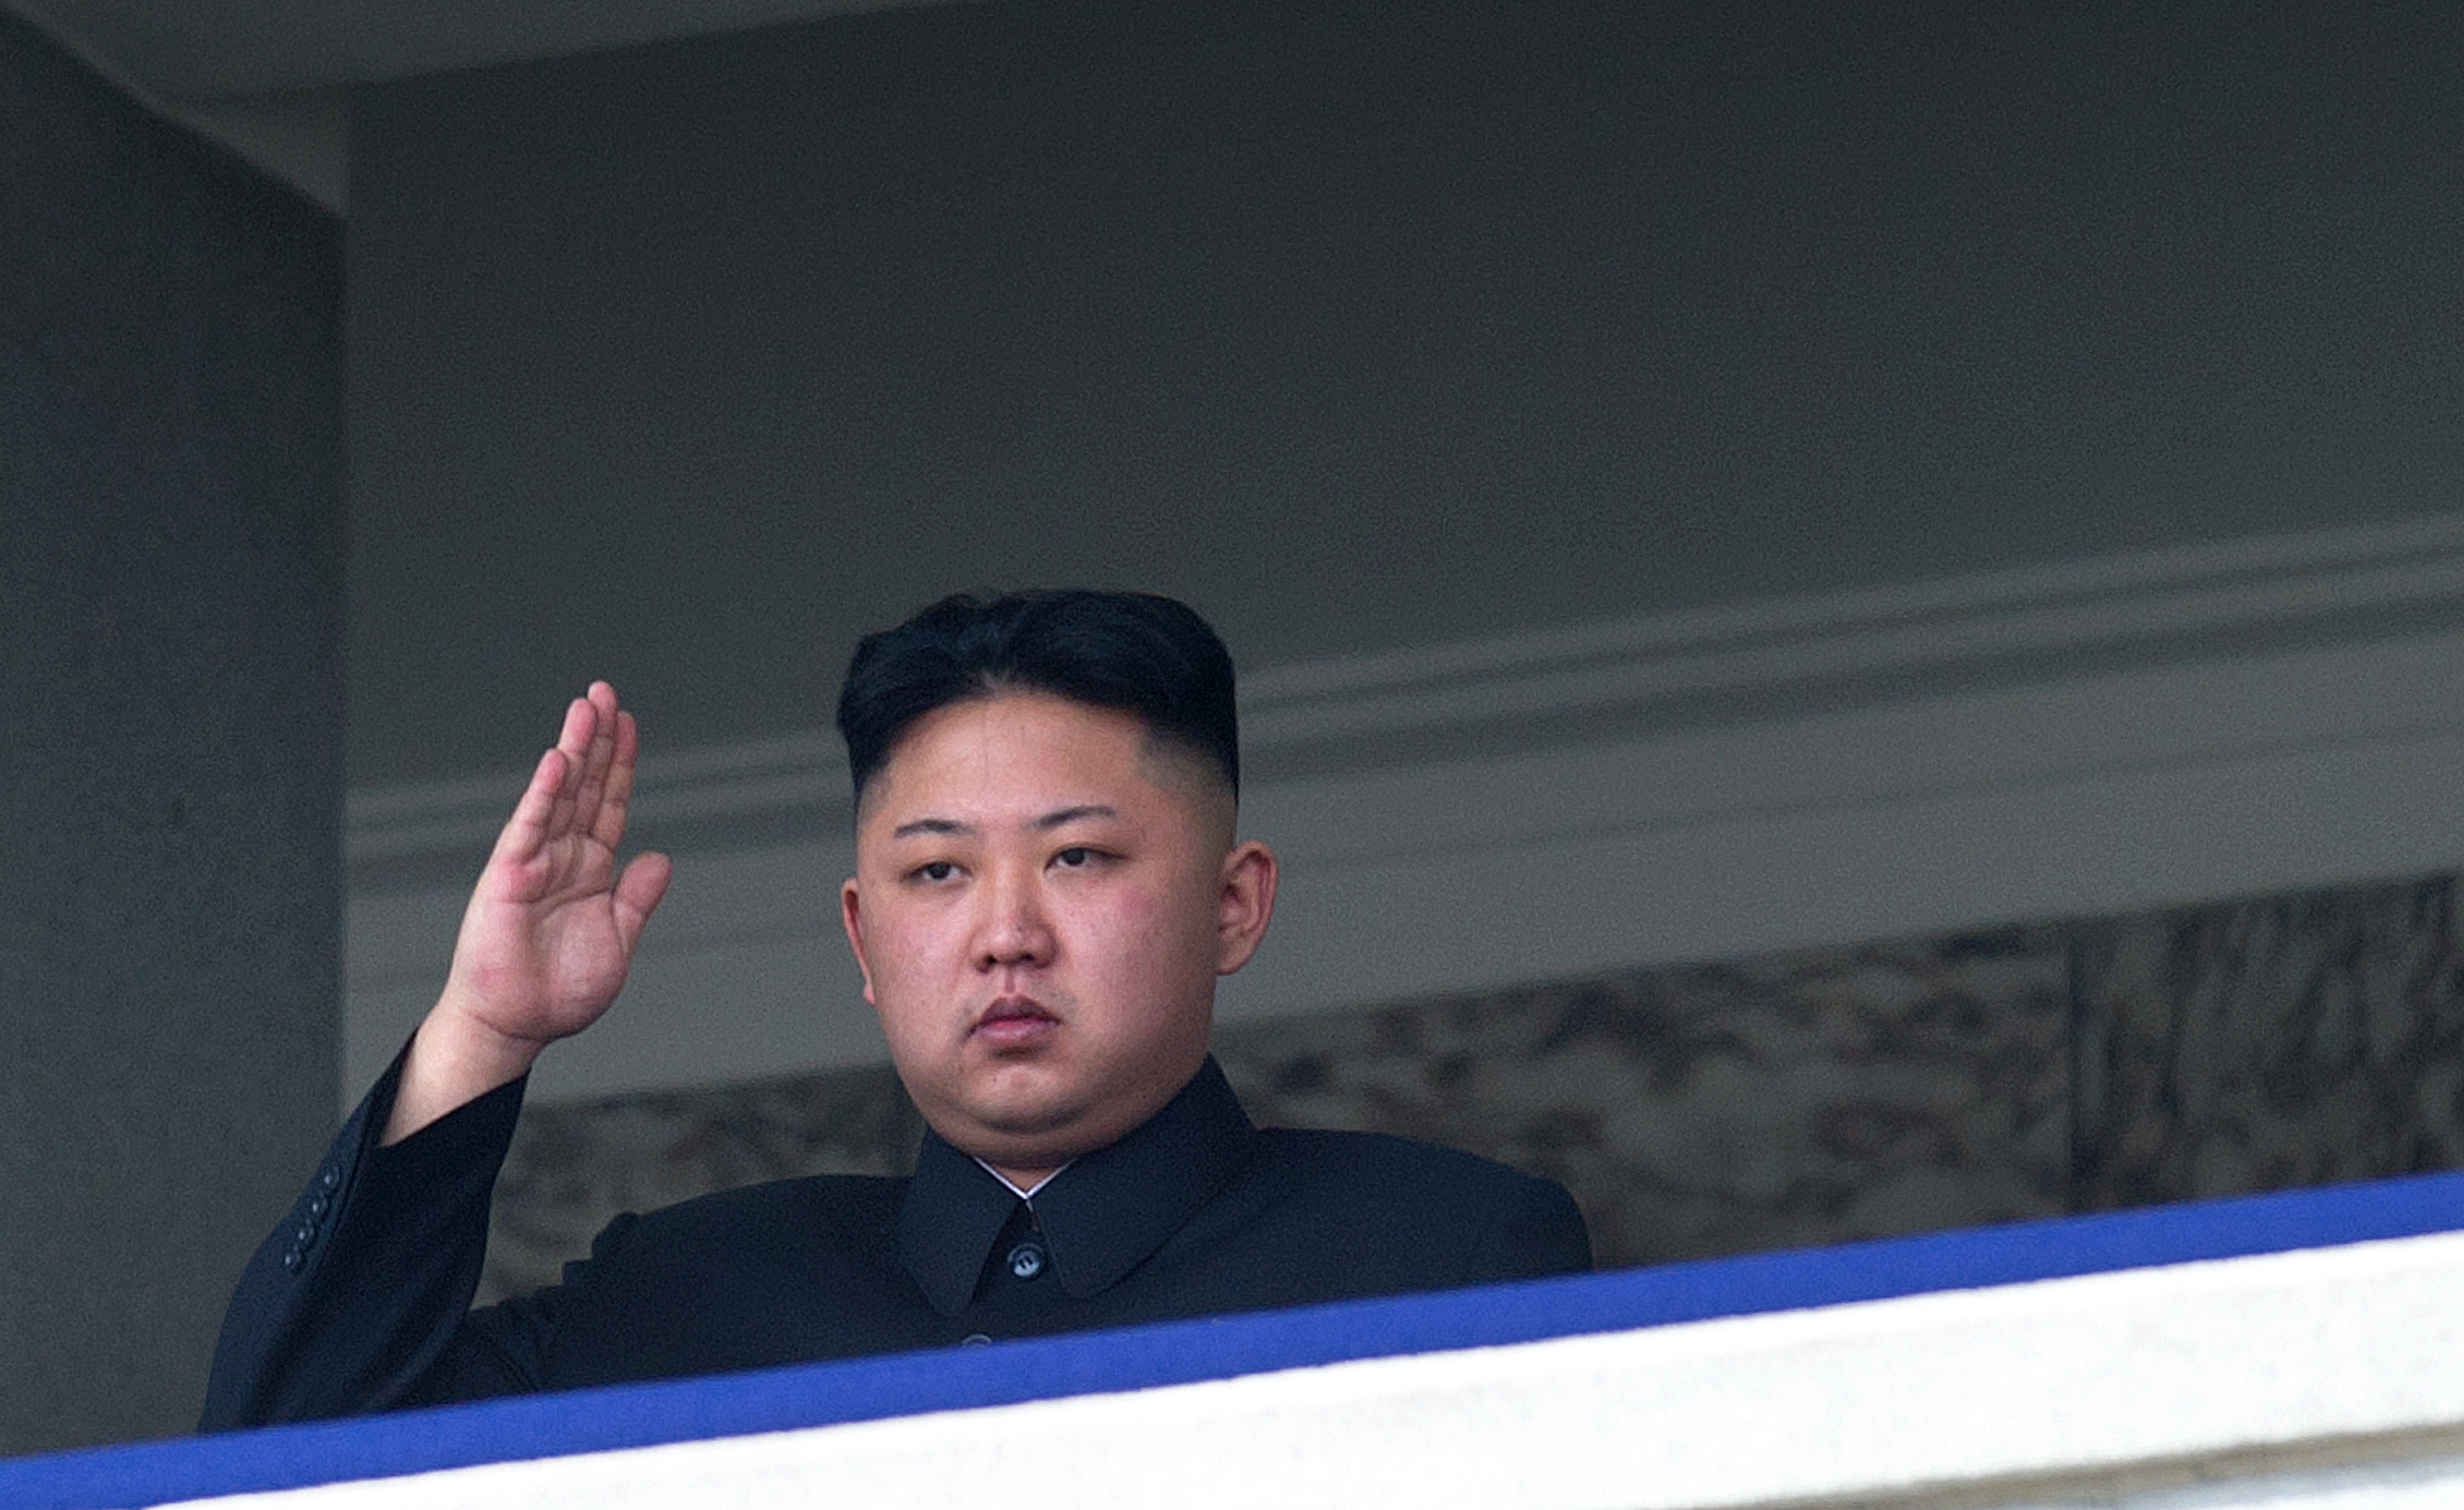 North Korean leader Kim Jong-Un salutes during a military parade in Pyongyang, April 15, 2012.